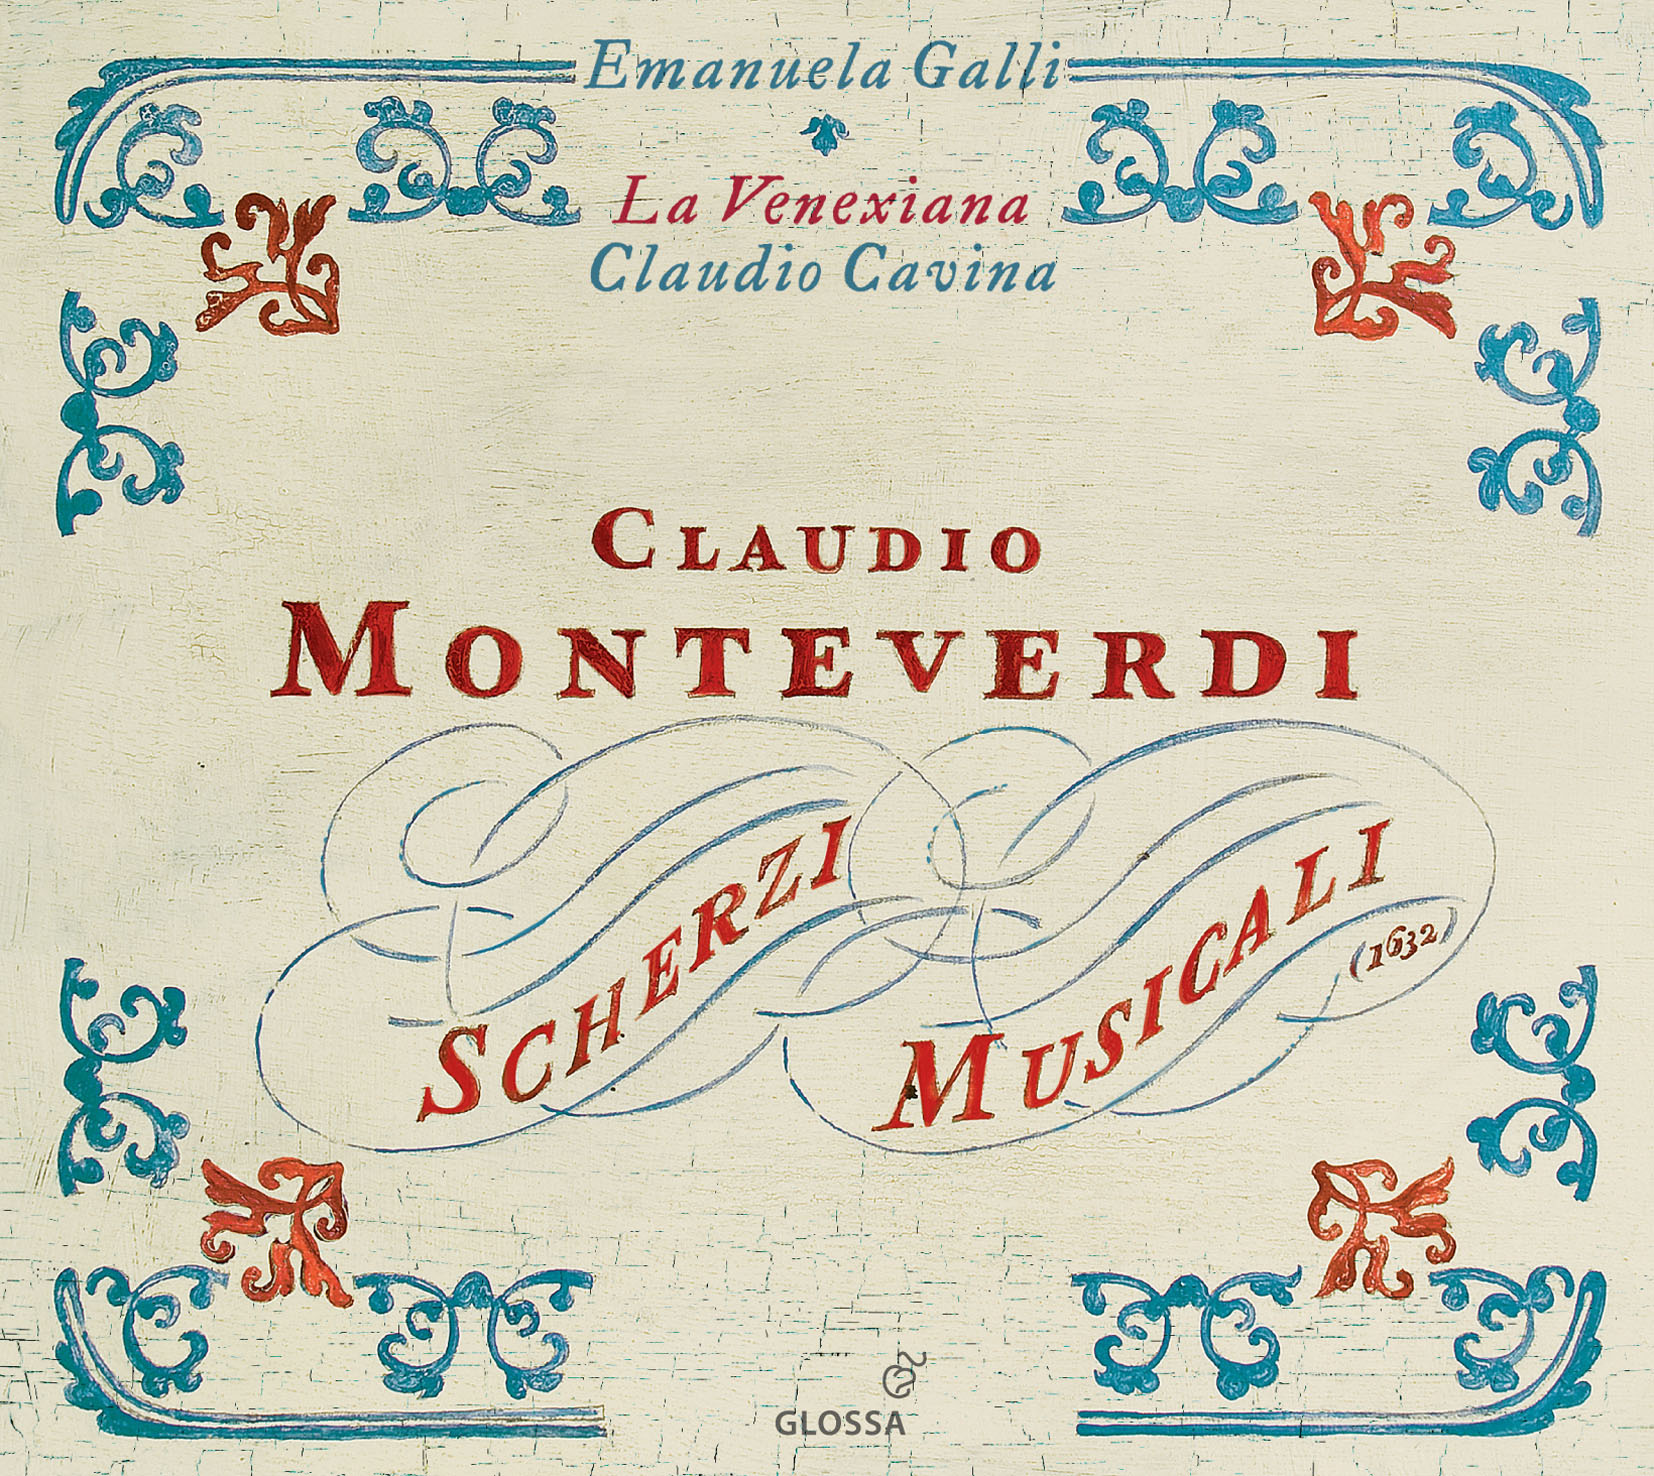 claudio monteverdi essay A short biography with links to some essays about monteverdi's contemporaries and compositional style claudio monteverdi biography (wikipedia) npr: milestones of the millenium: jan swafford.